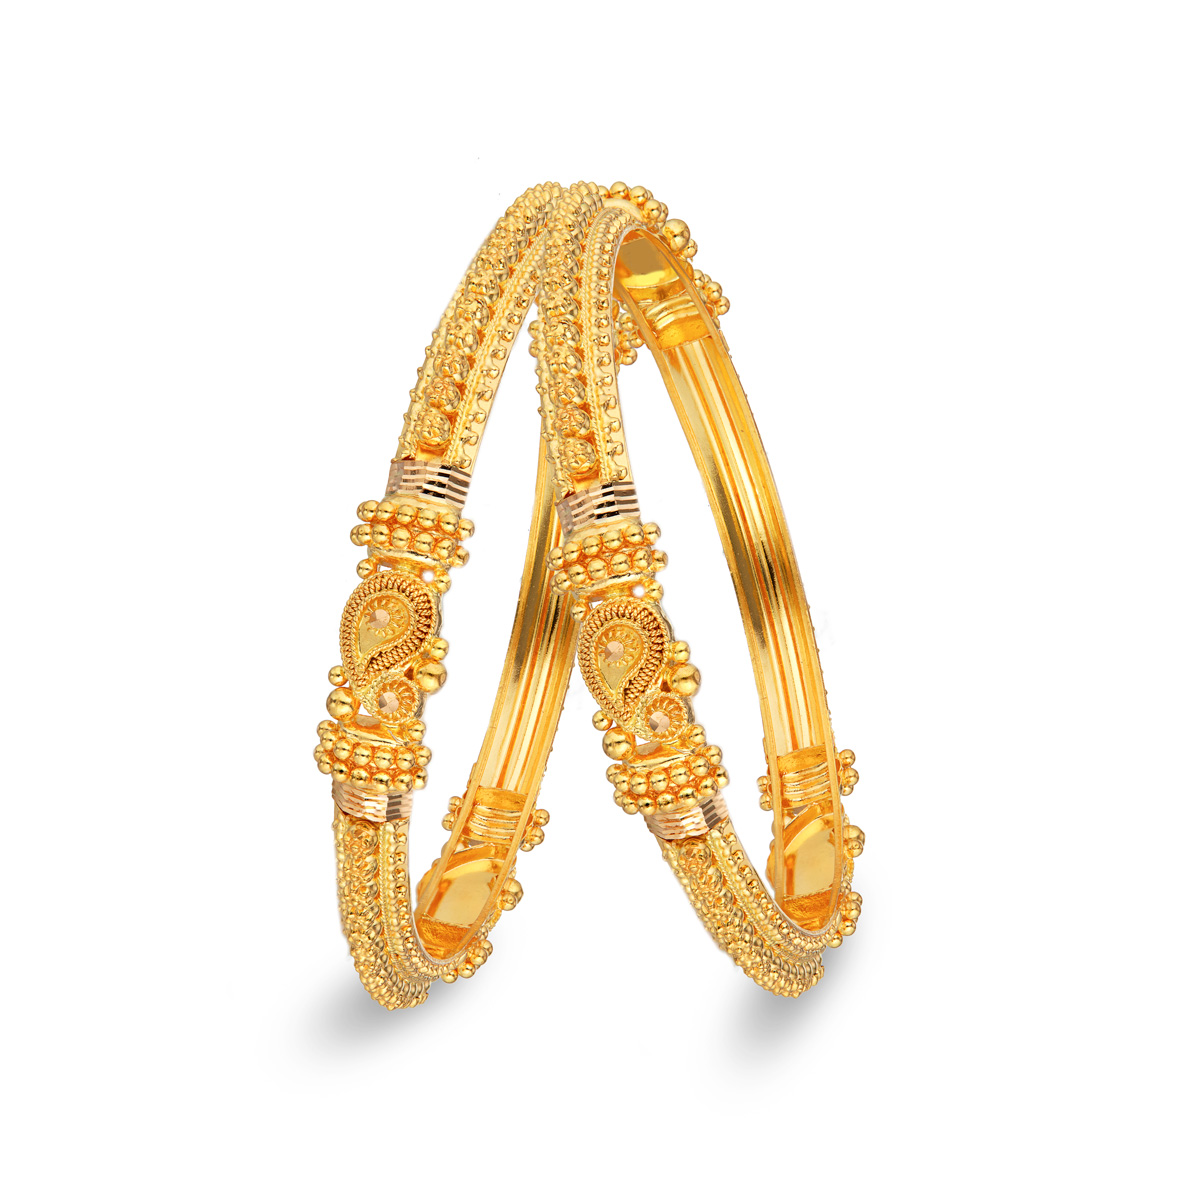 The Amna Bangle